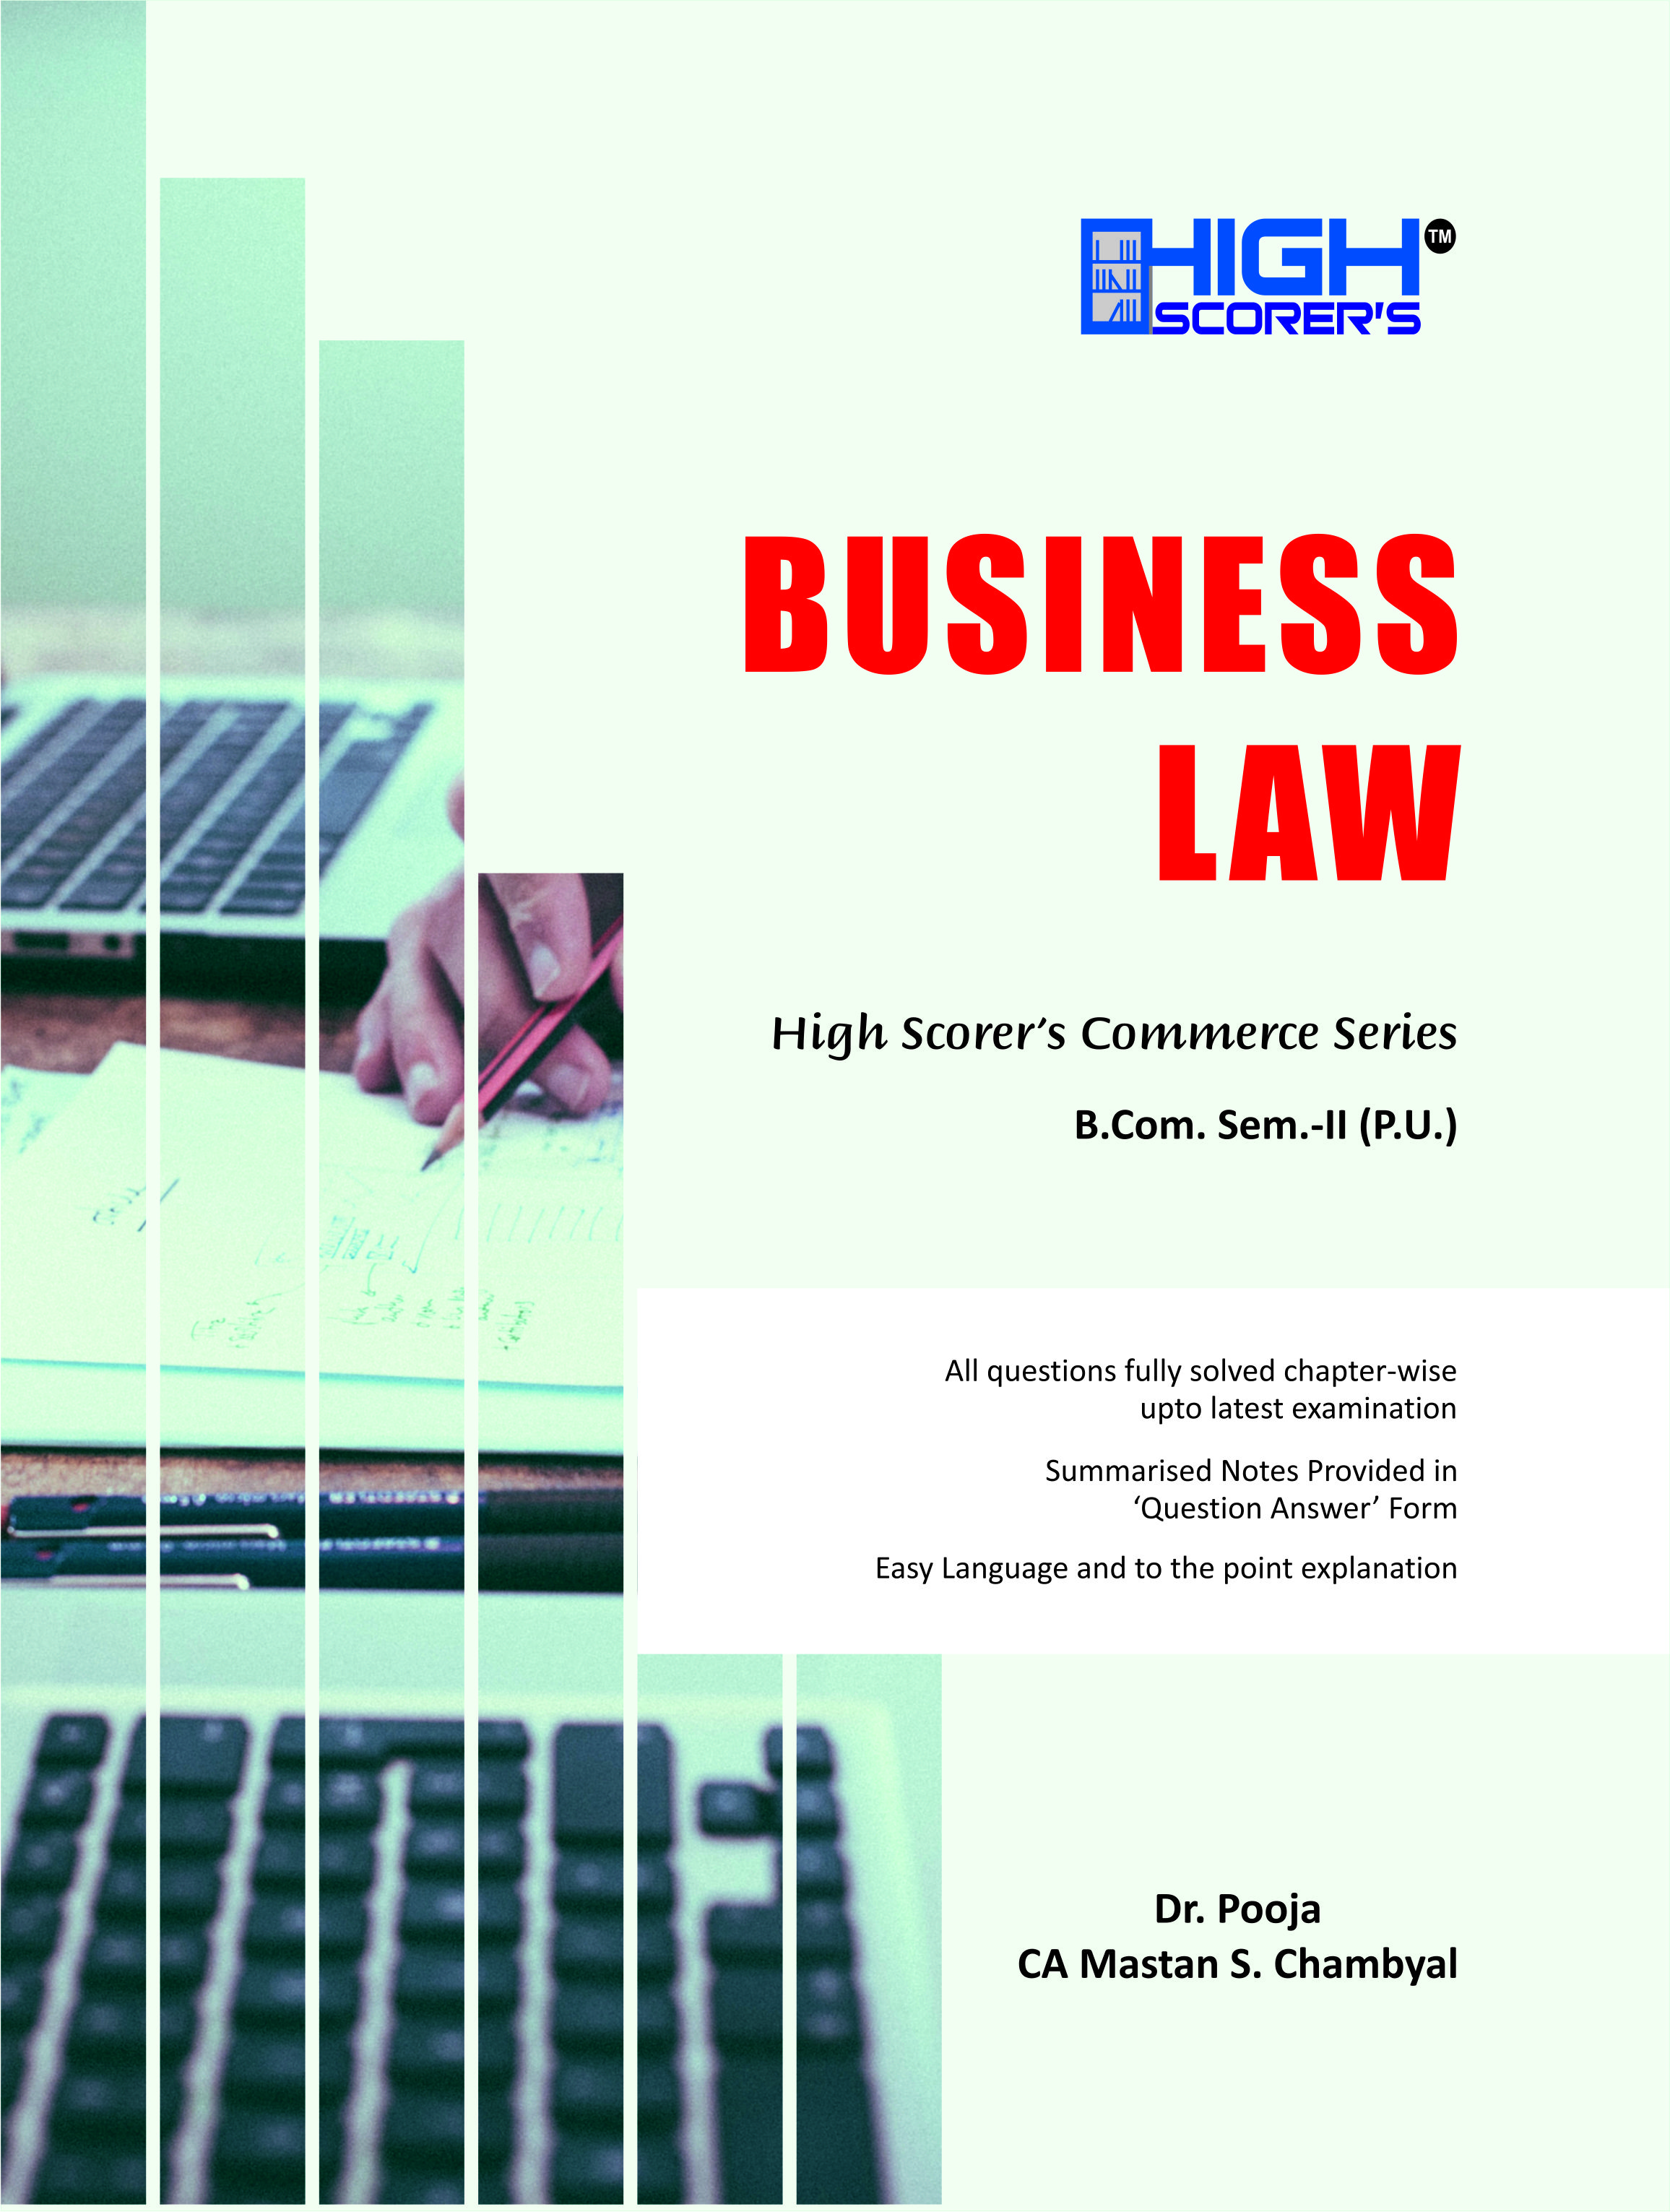 High Scorer's Business Law for B.Com. Sem.-II by Dr. Pooja and CA Mastan Singh Chambyal (Mohindra Publishing House) Edition 2020 for Panjab University